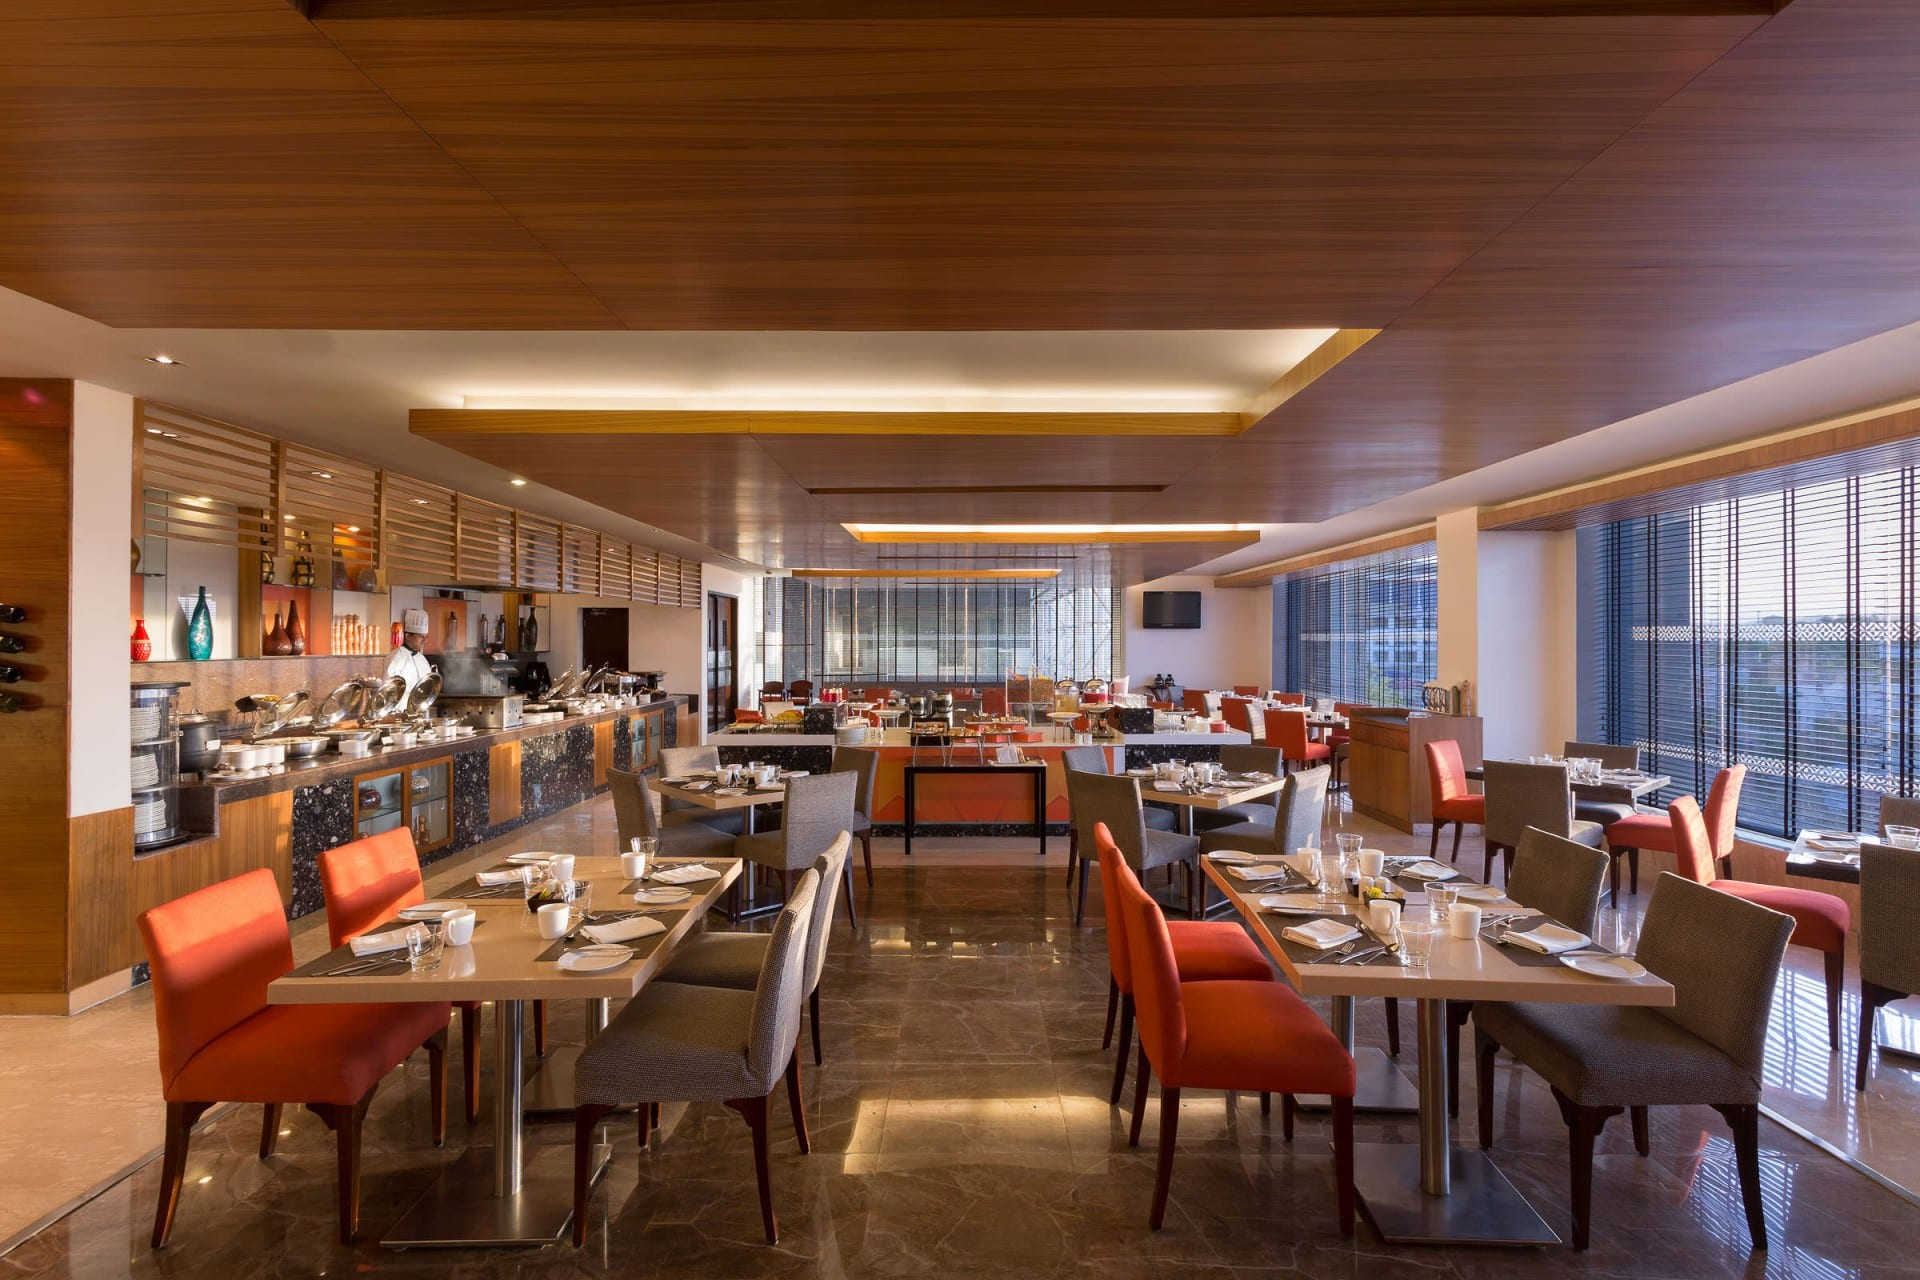 Best Architecture Photographer India   Four Points by Sheraton Restaurant